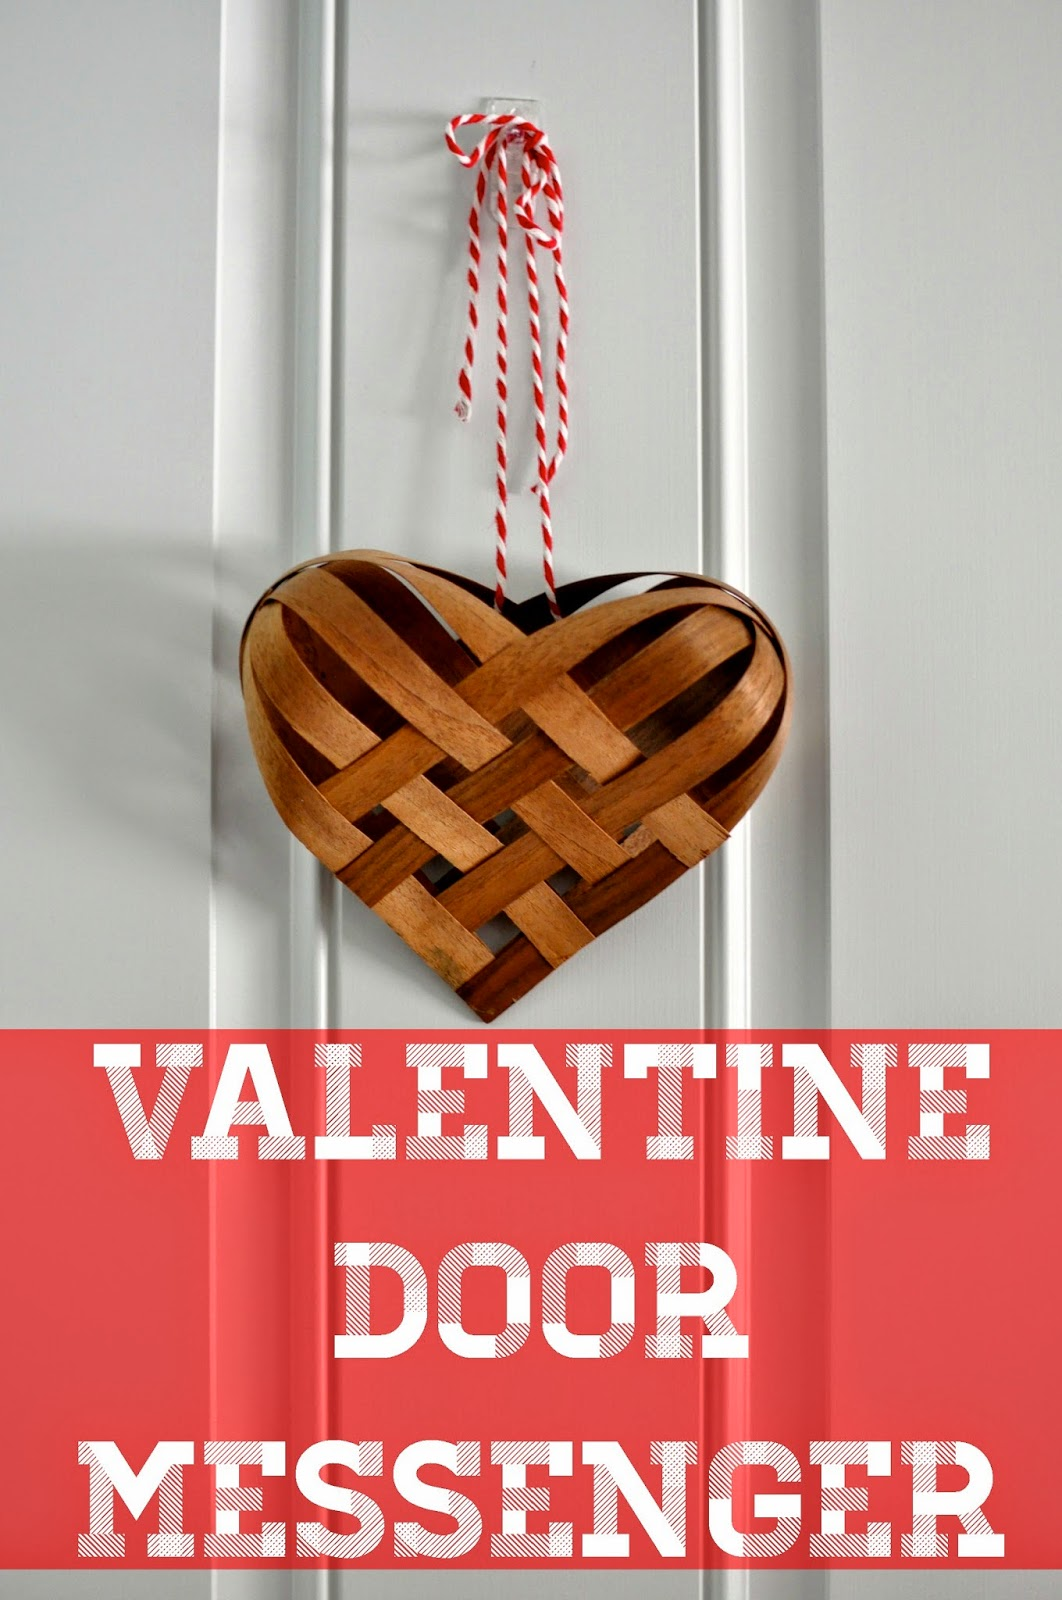 Valentine's Day Door Messenger